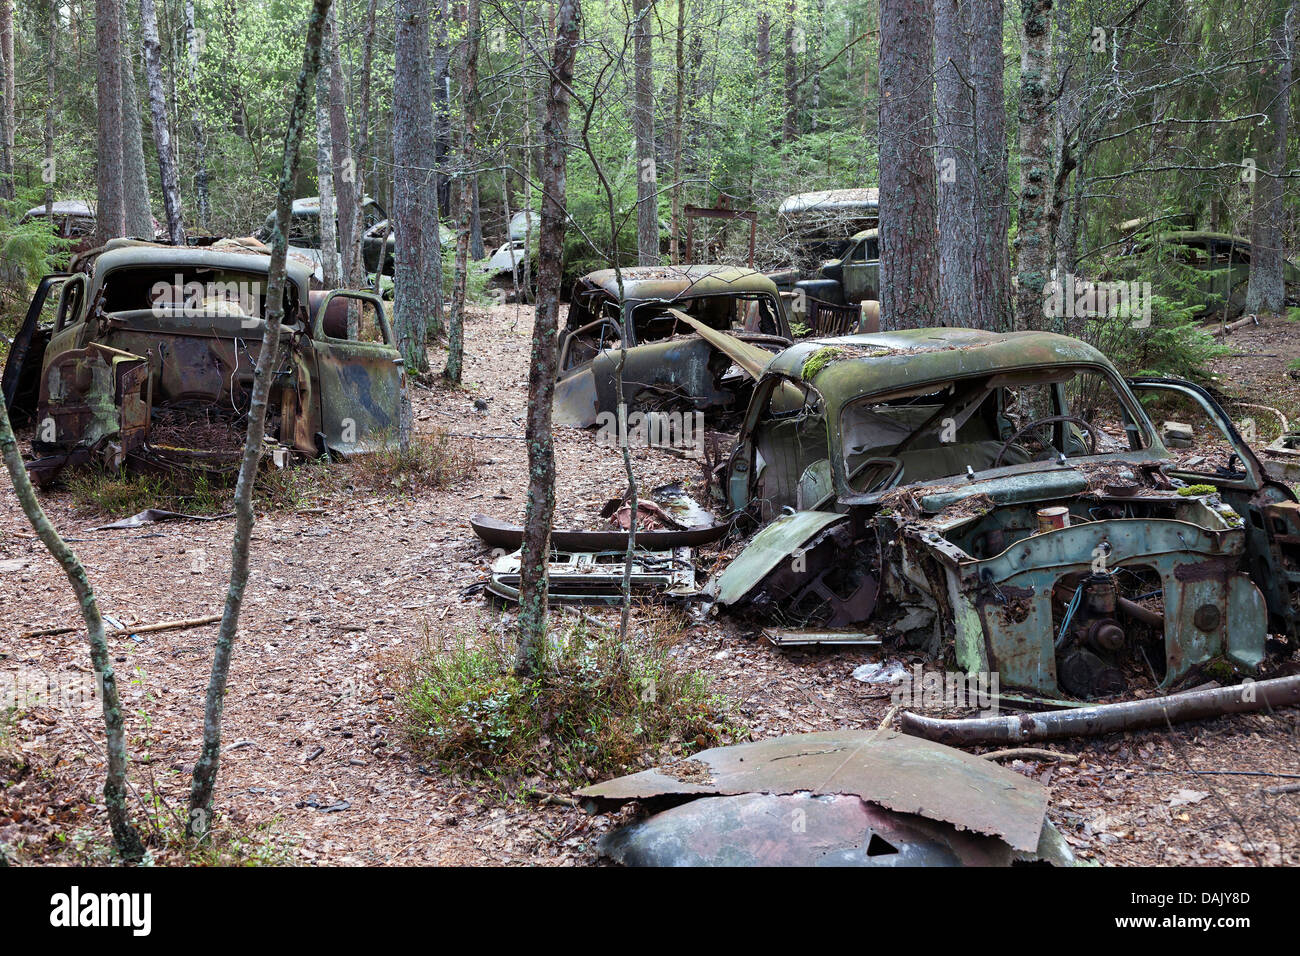 Car cemetery of Kyrkoe Mosse - Stock Image